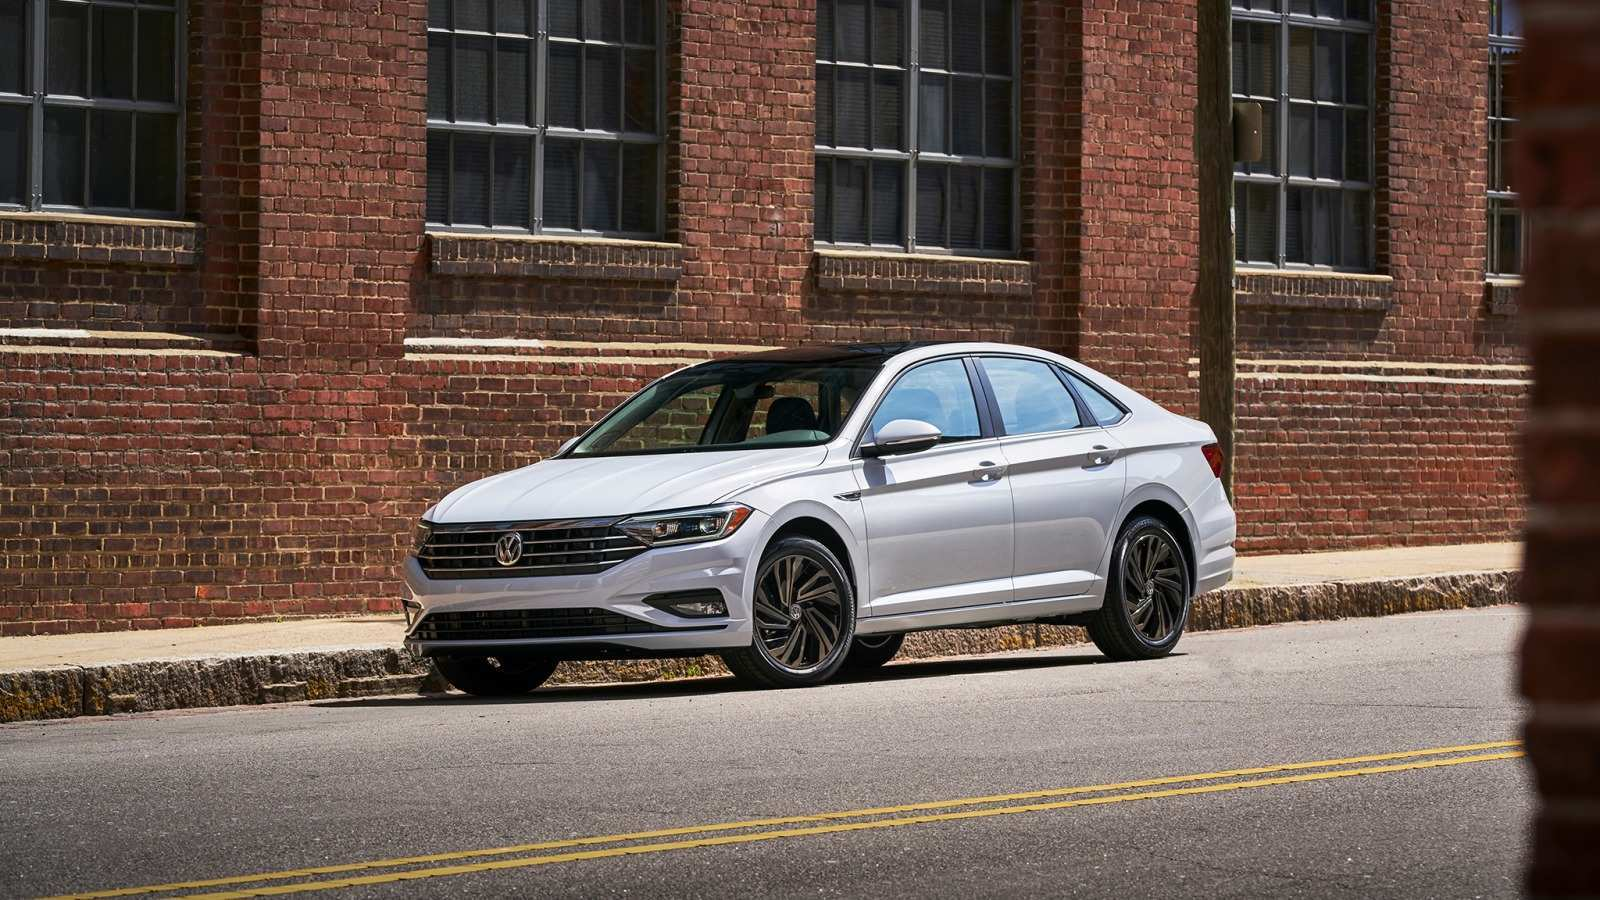 94 New 2019 Vw Jetta Tdi Interior